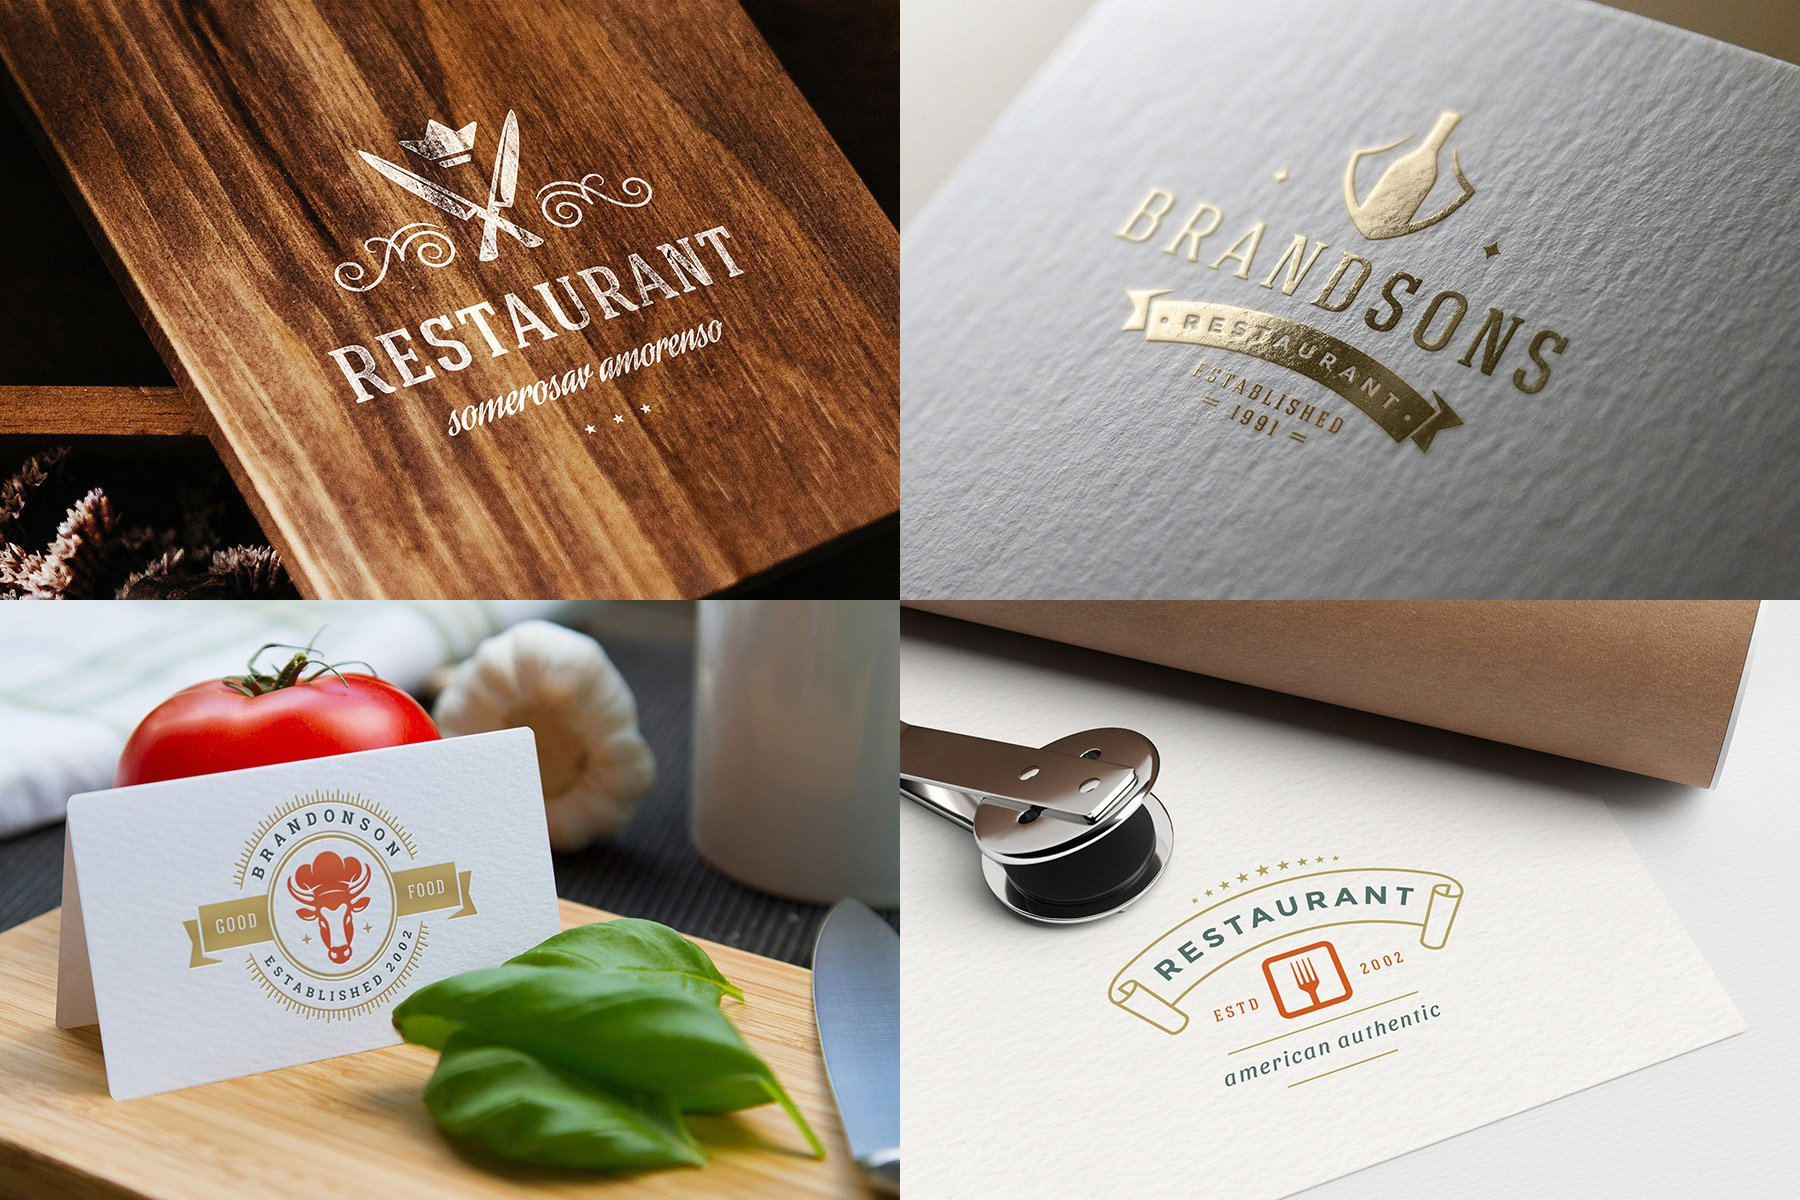 36 Restaurant Logos and Badges example image 12